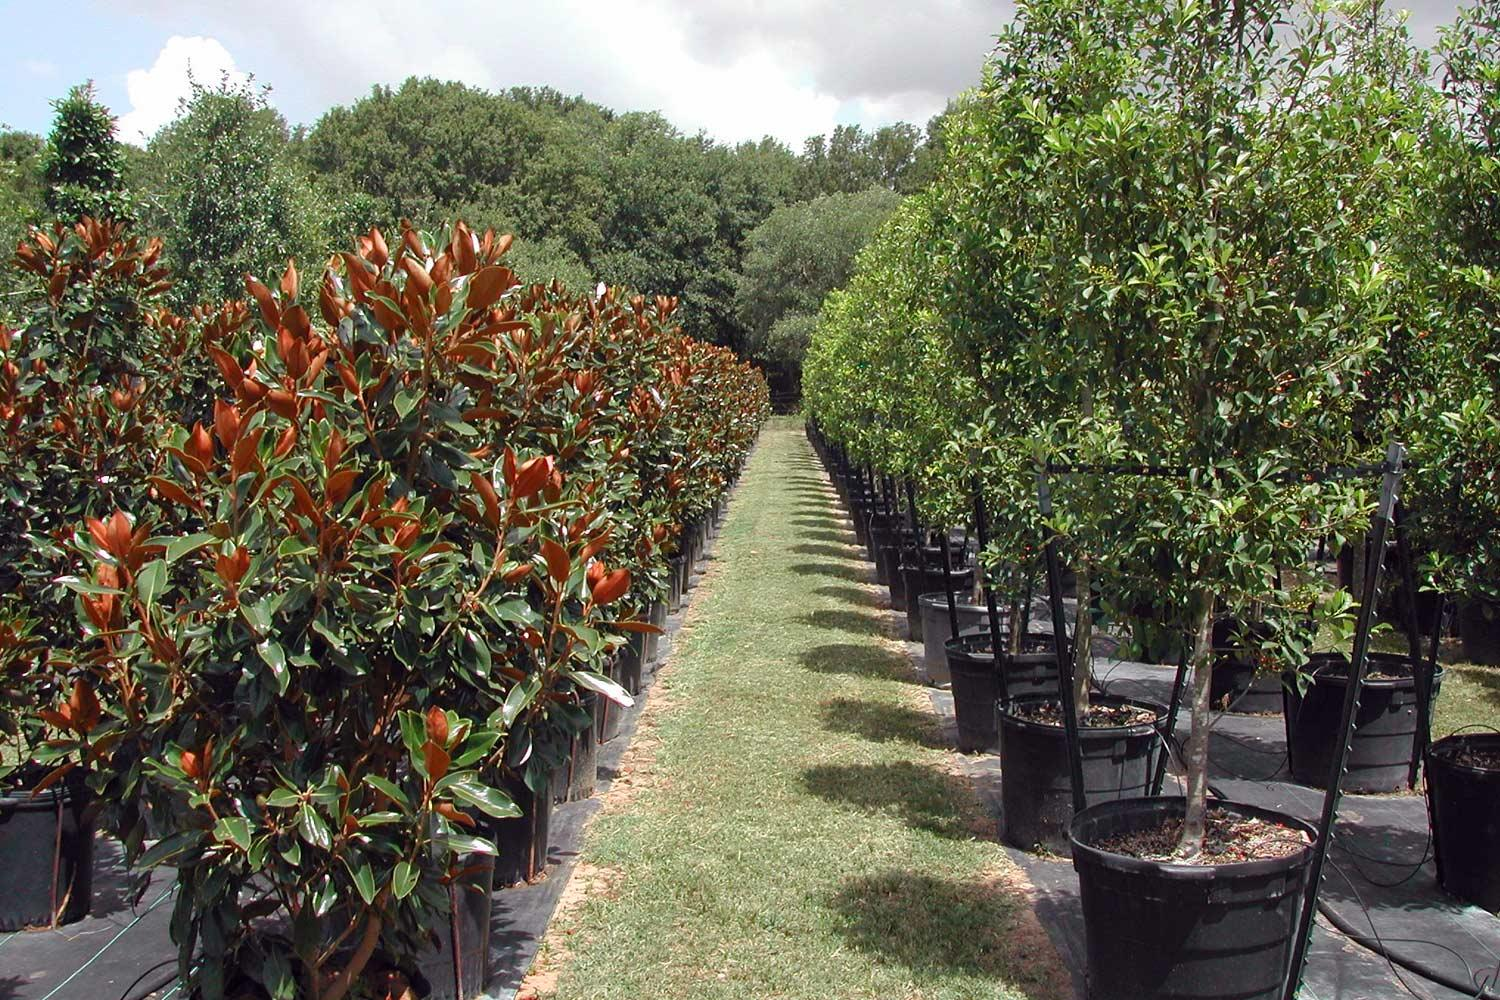 Trees at a nursery ready for transplanting.